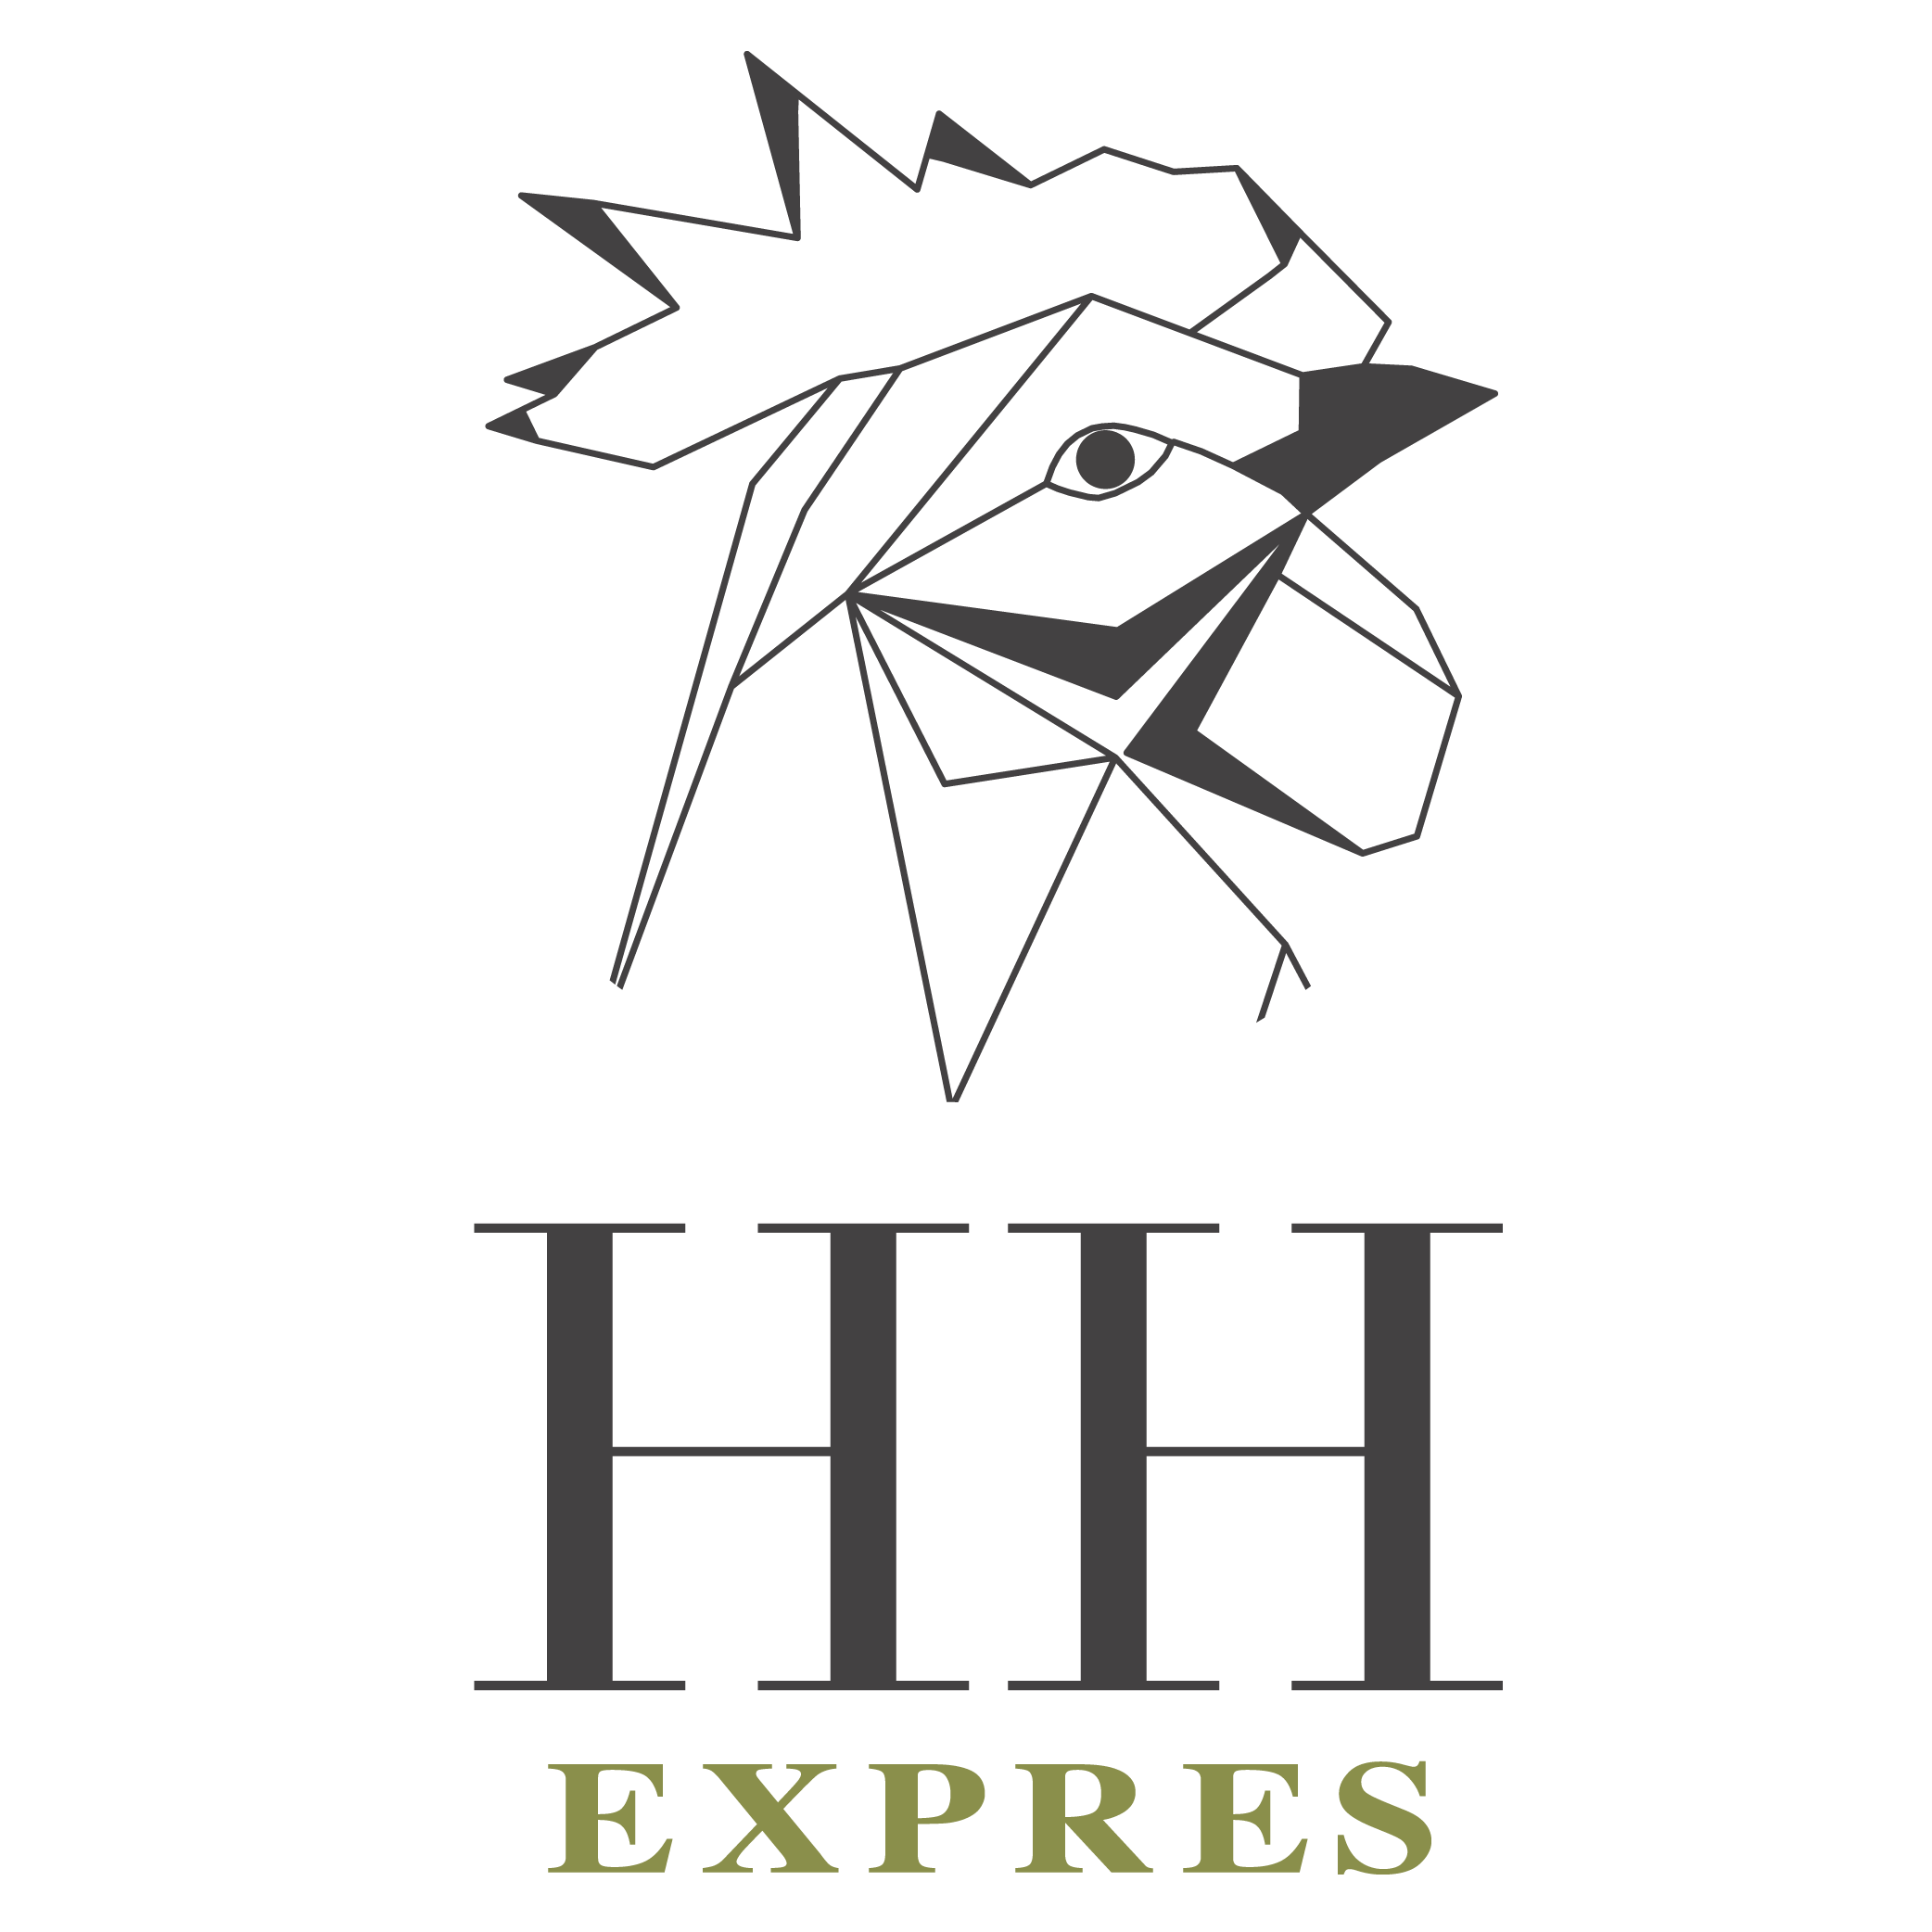 Hosting House Express